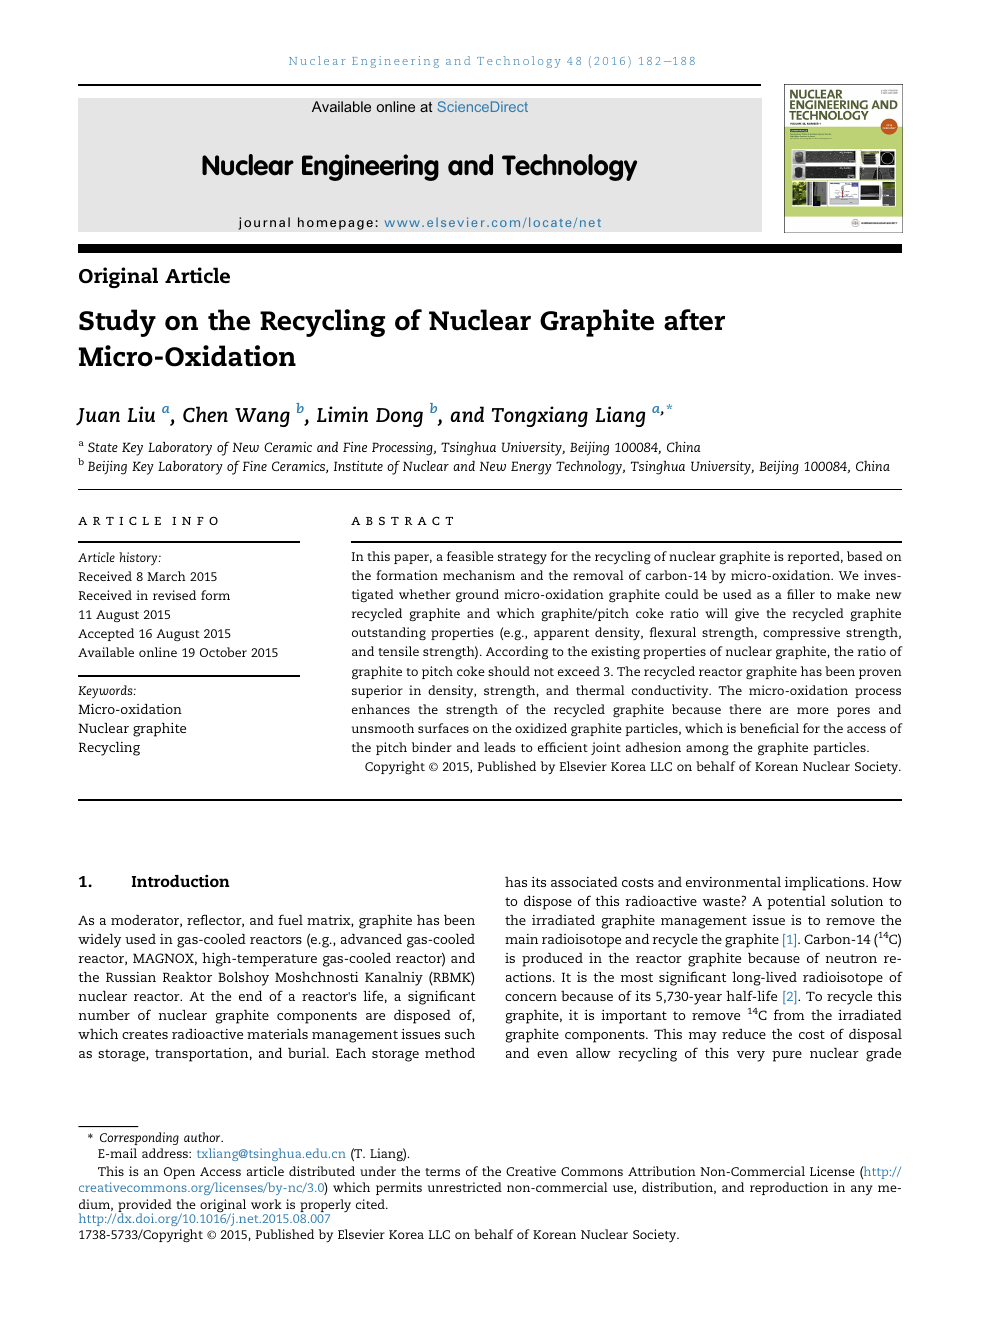 Study on the Recycling of Nuclear Graphite after Micro-Oxidation